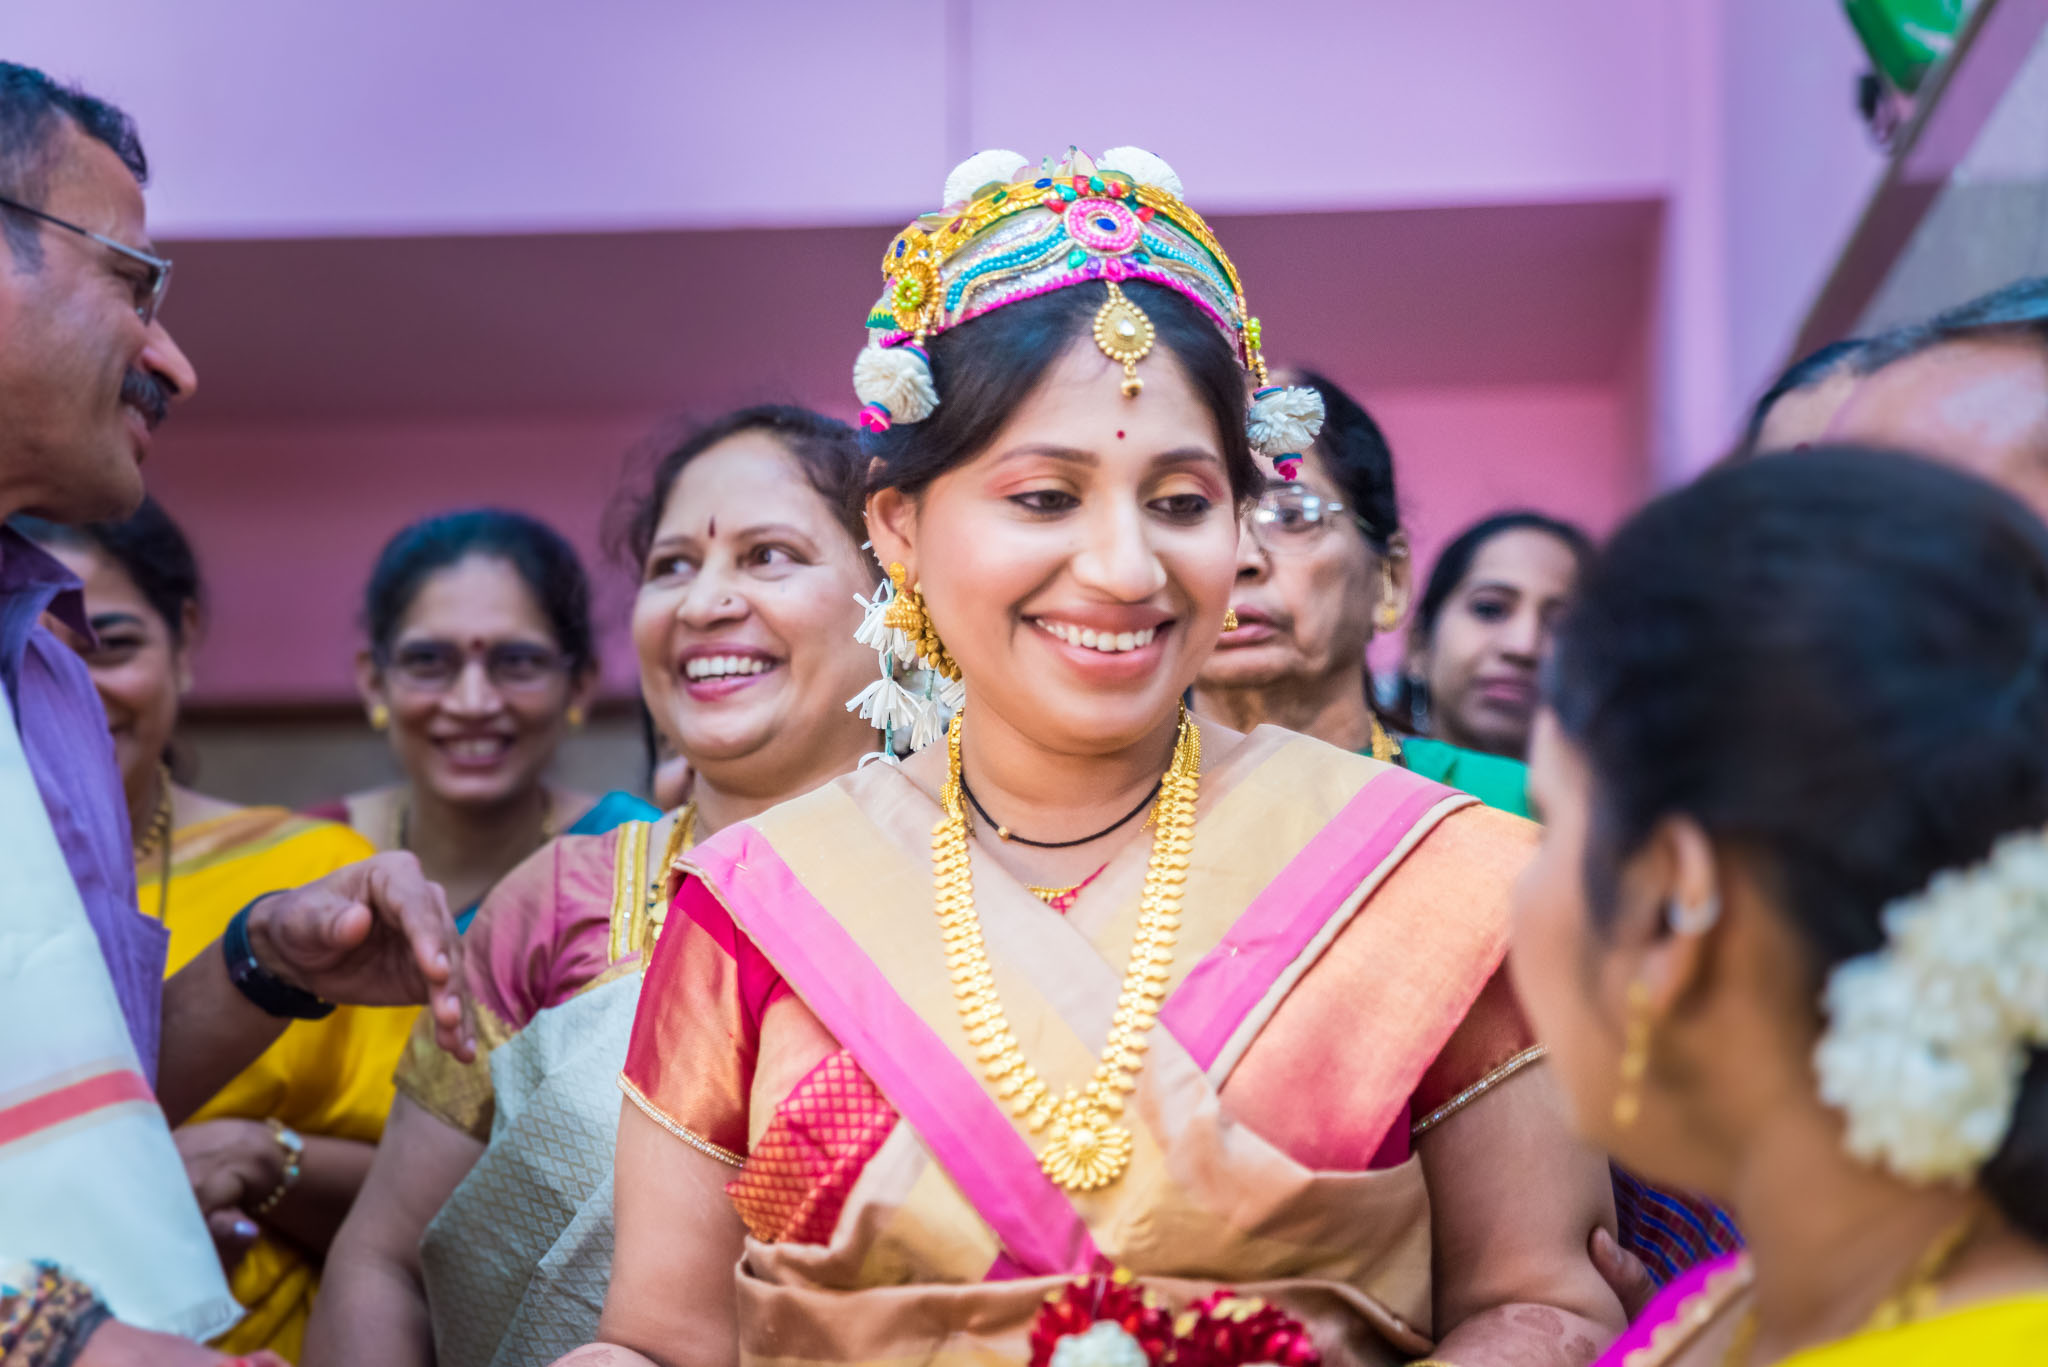 WhatKnot-Candid-Wedding-Photography-Mumbai-Bangalore-157